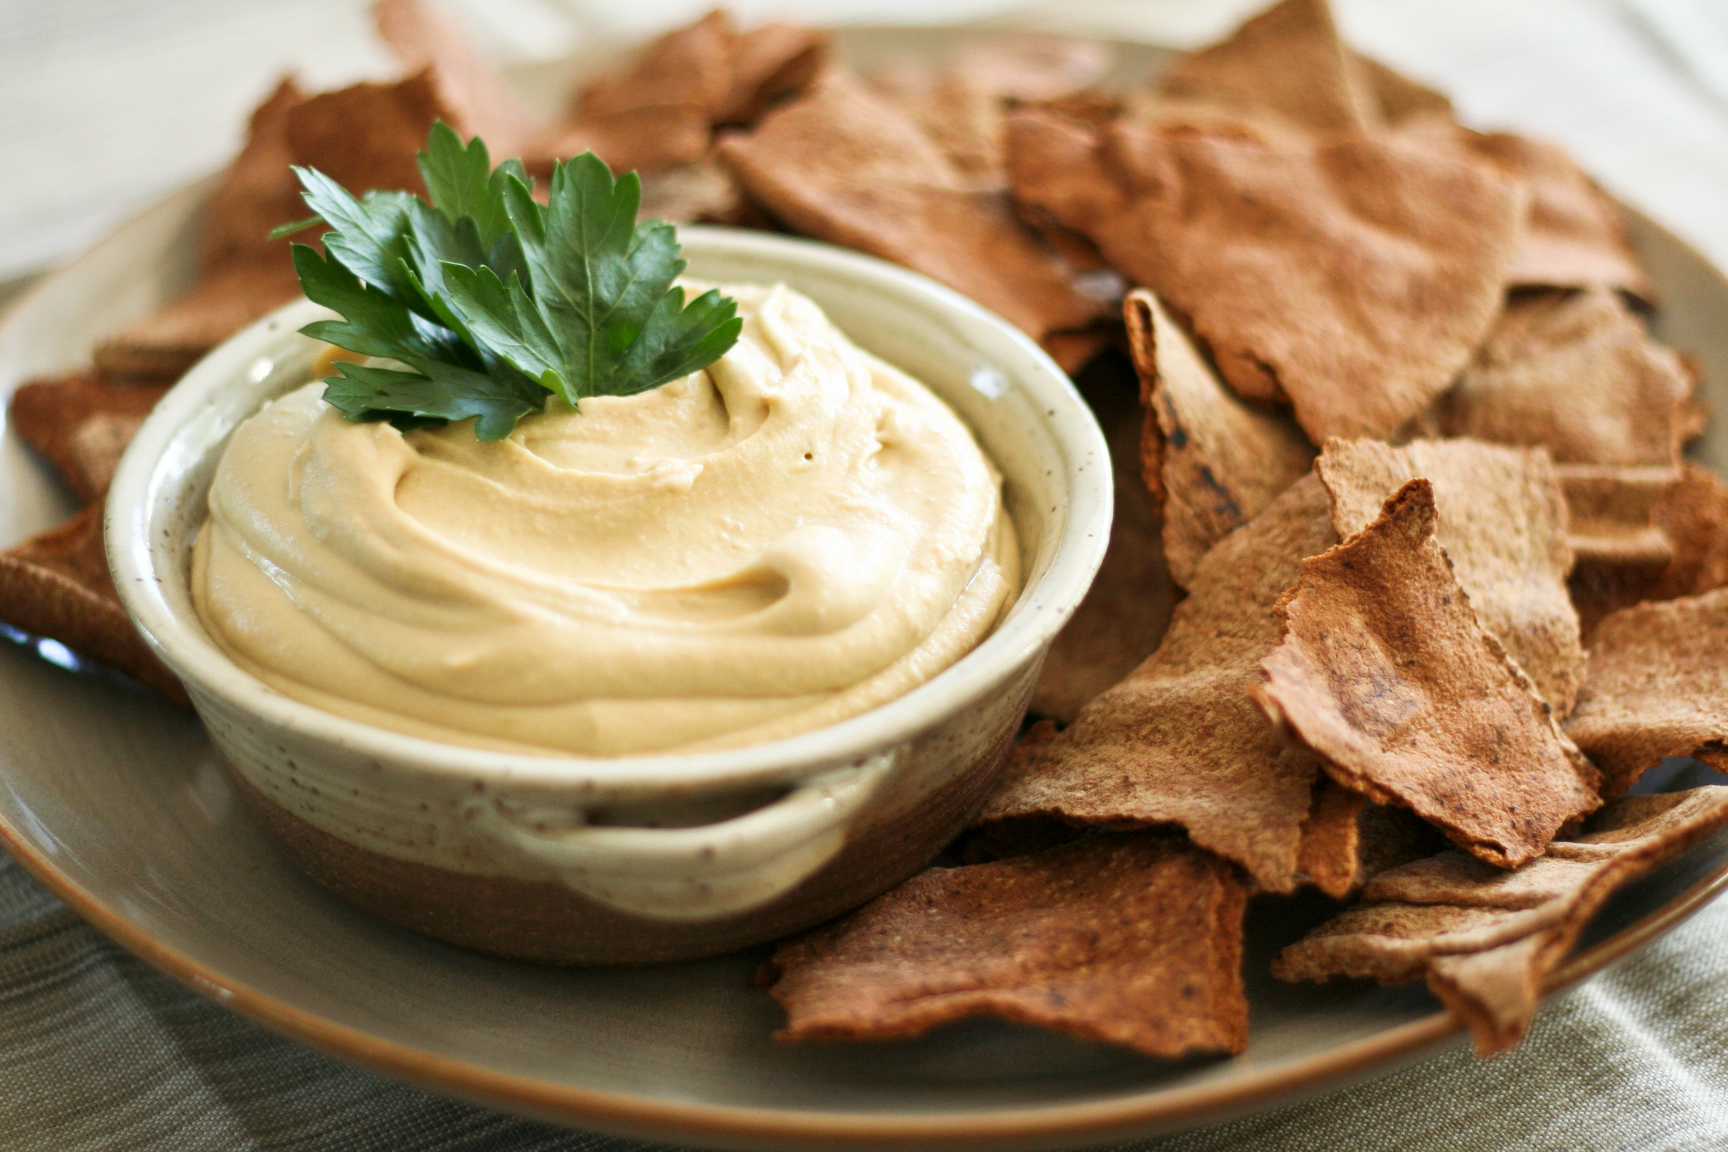 Food from the World: Hummus